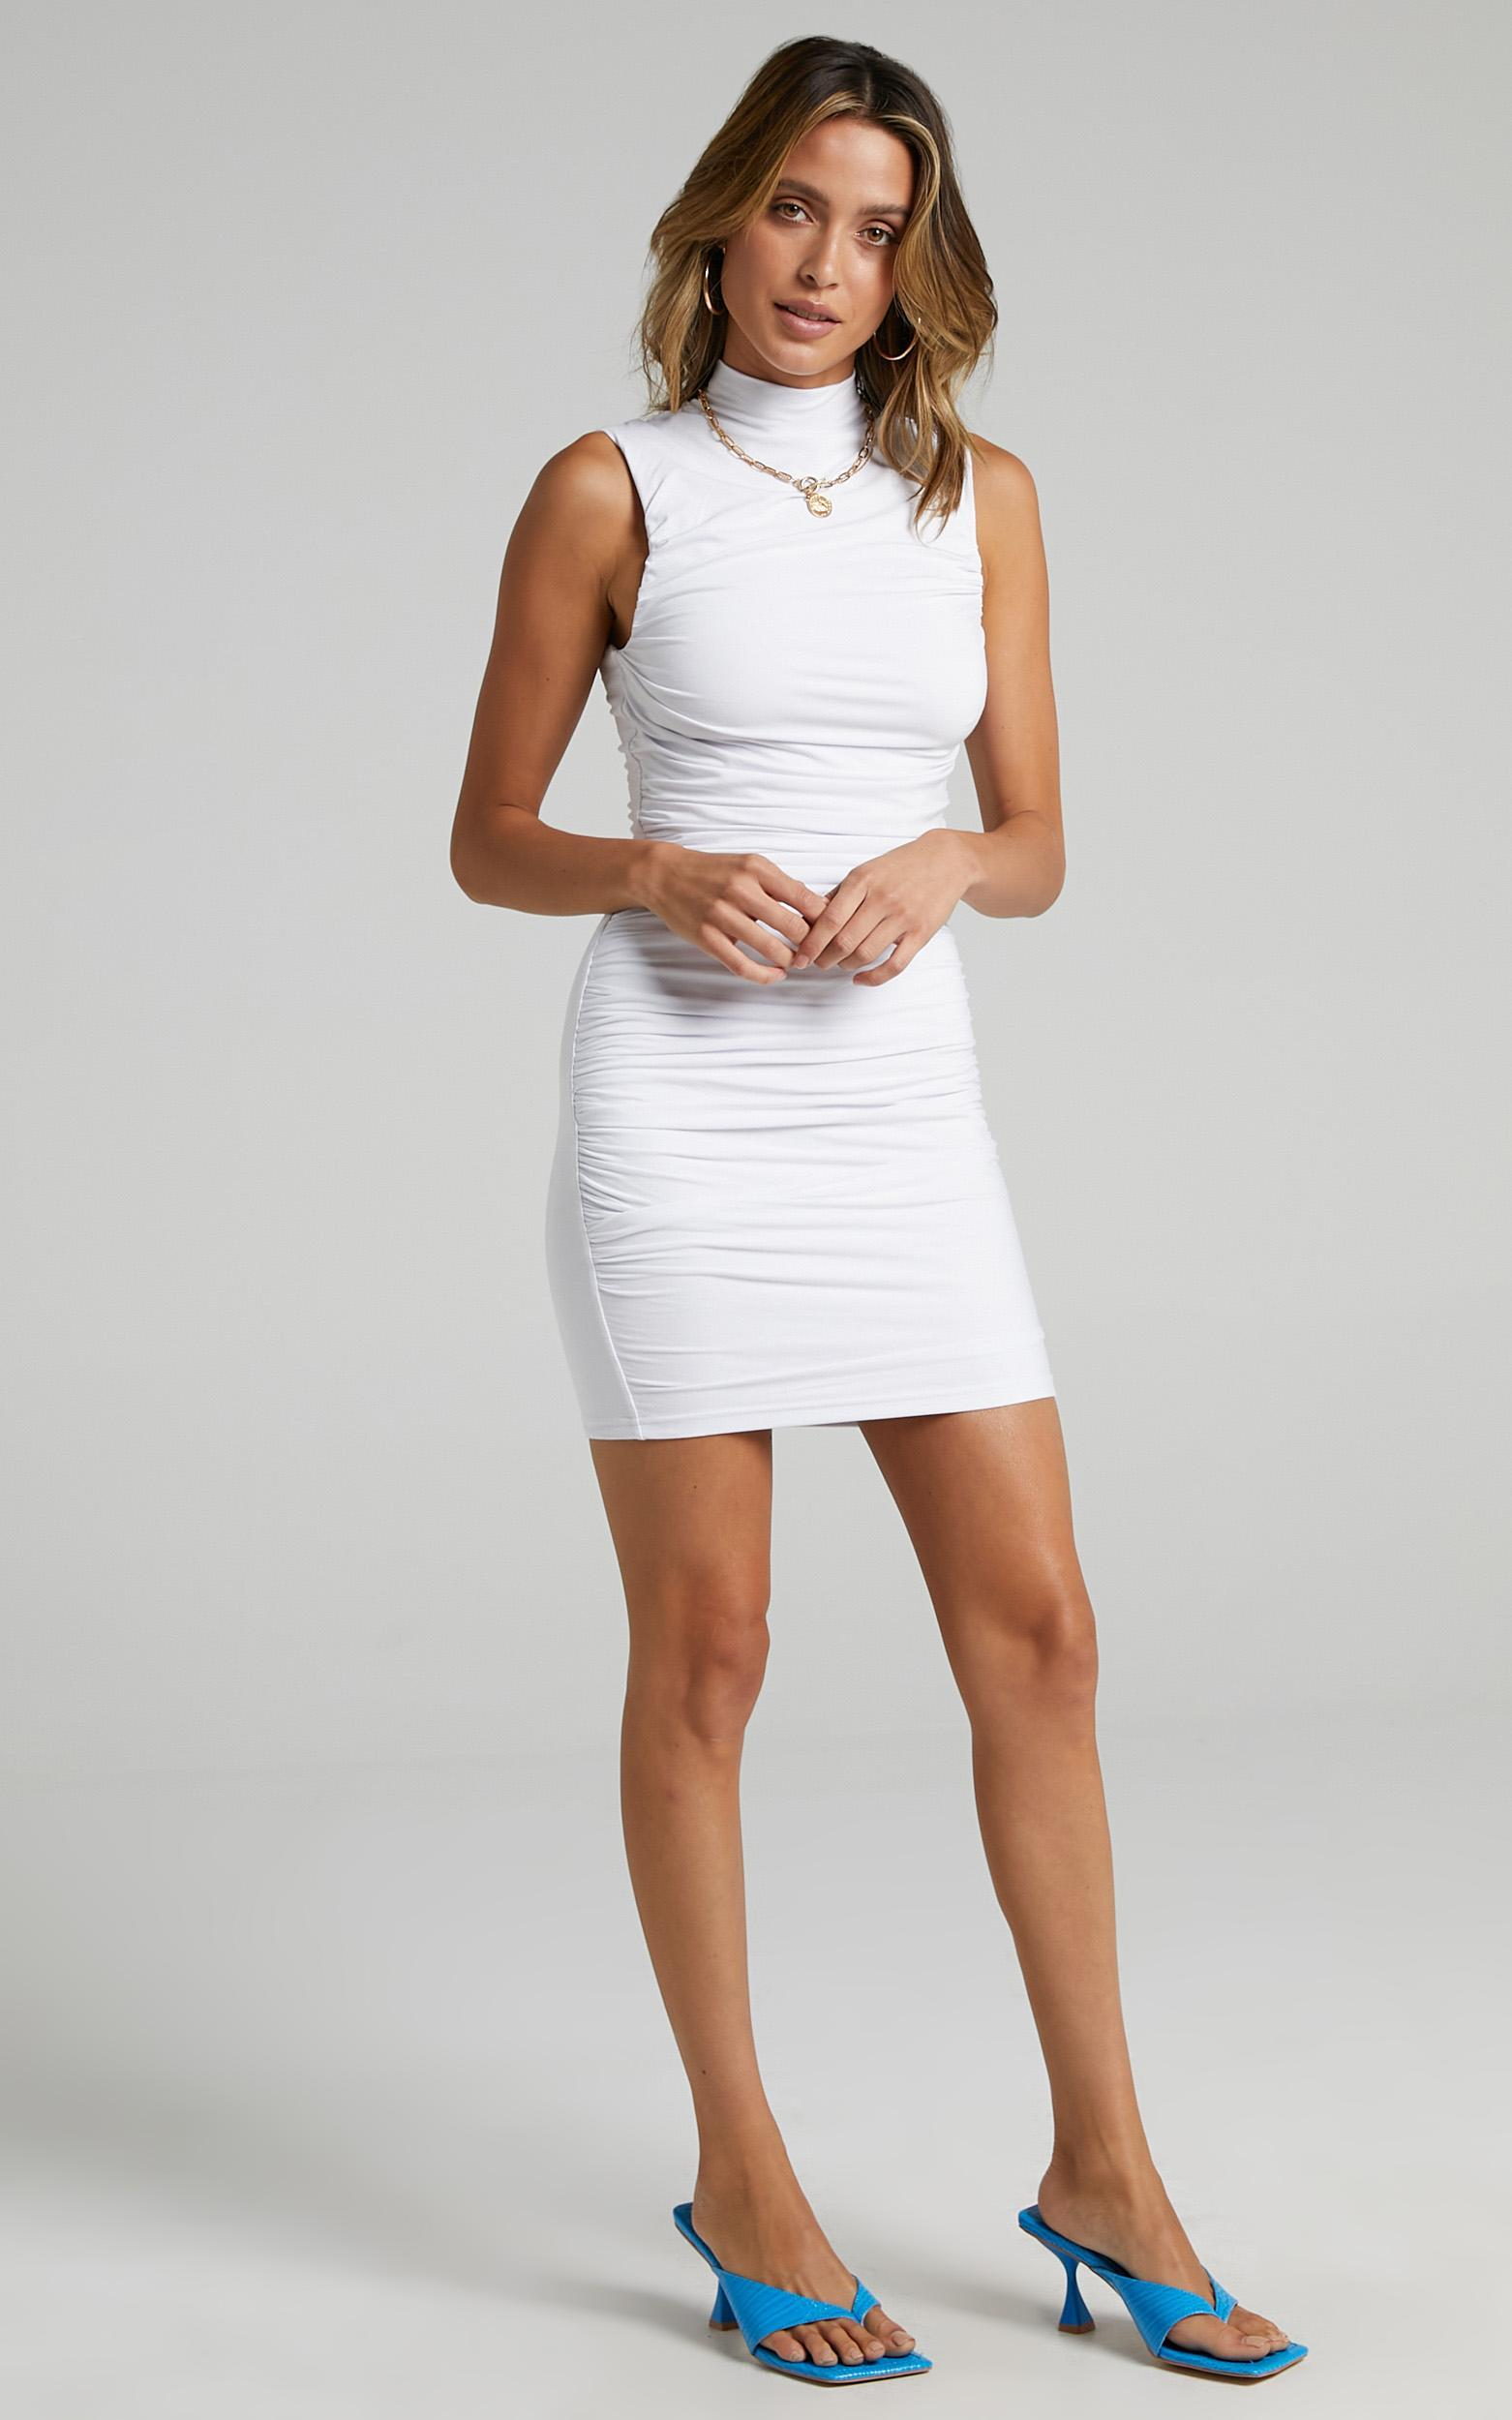 Lioness - Don't Call Me Baby Mini Dress in White - 6 (XS), White, hi-res image number null